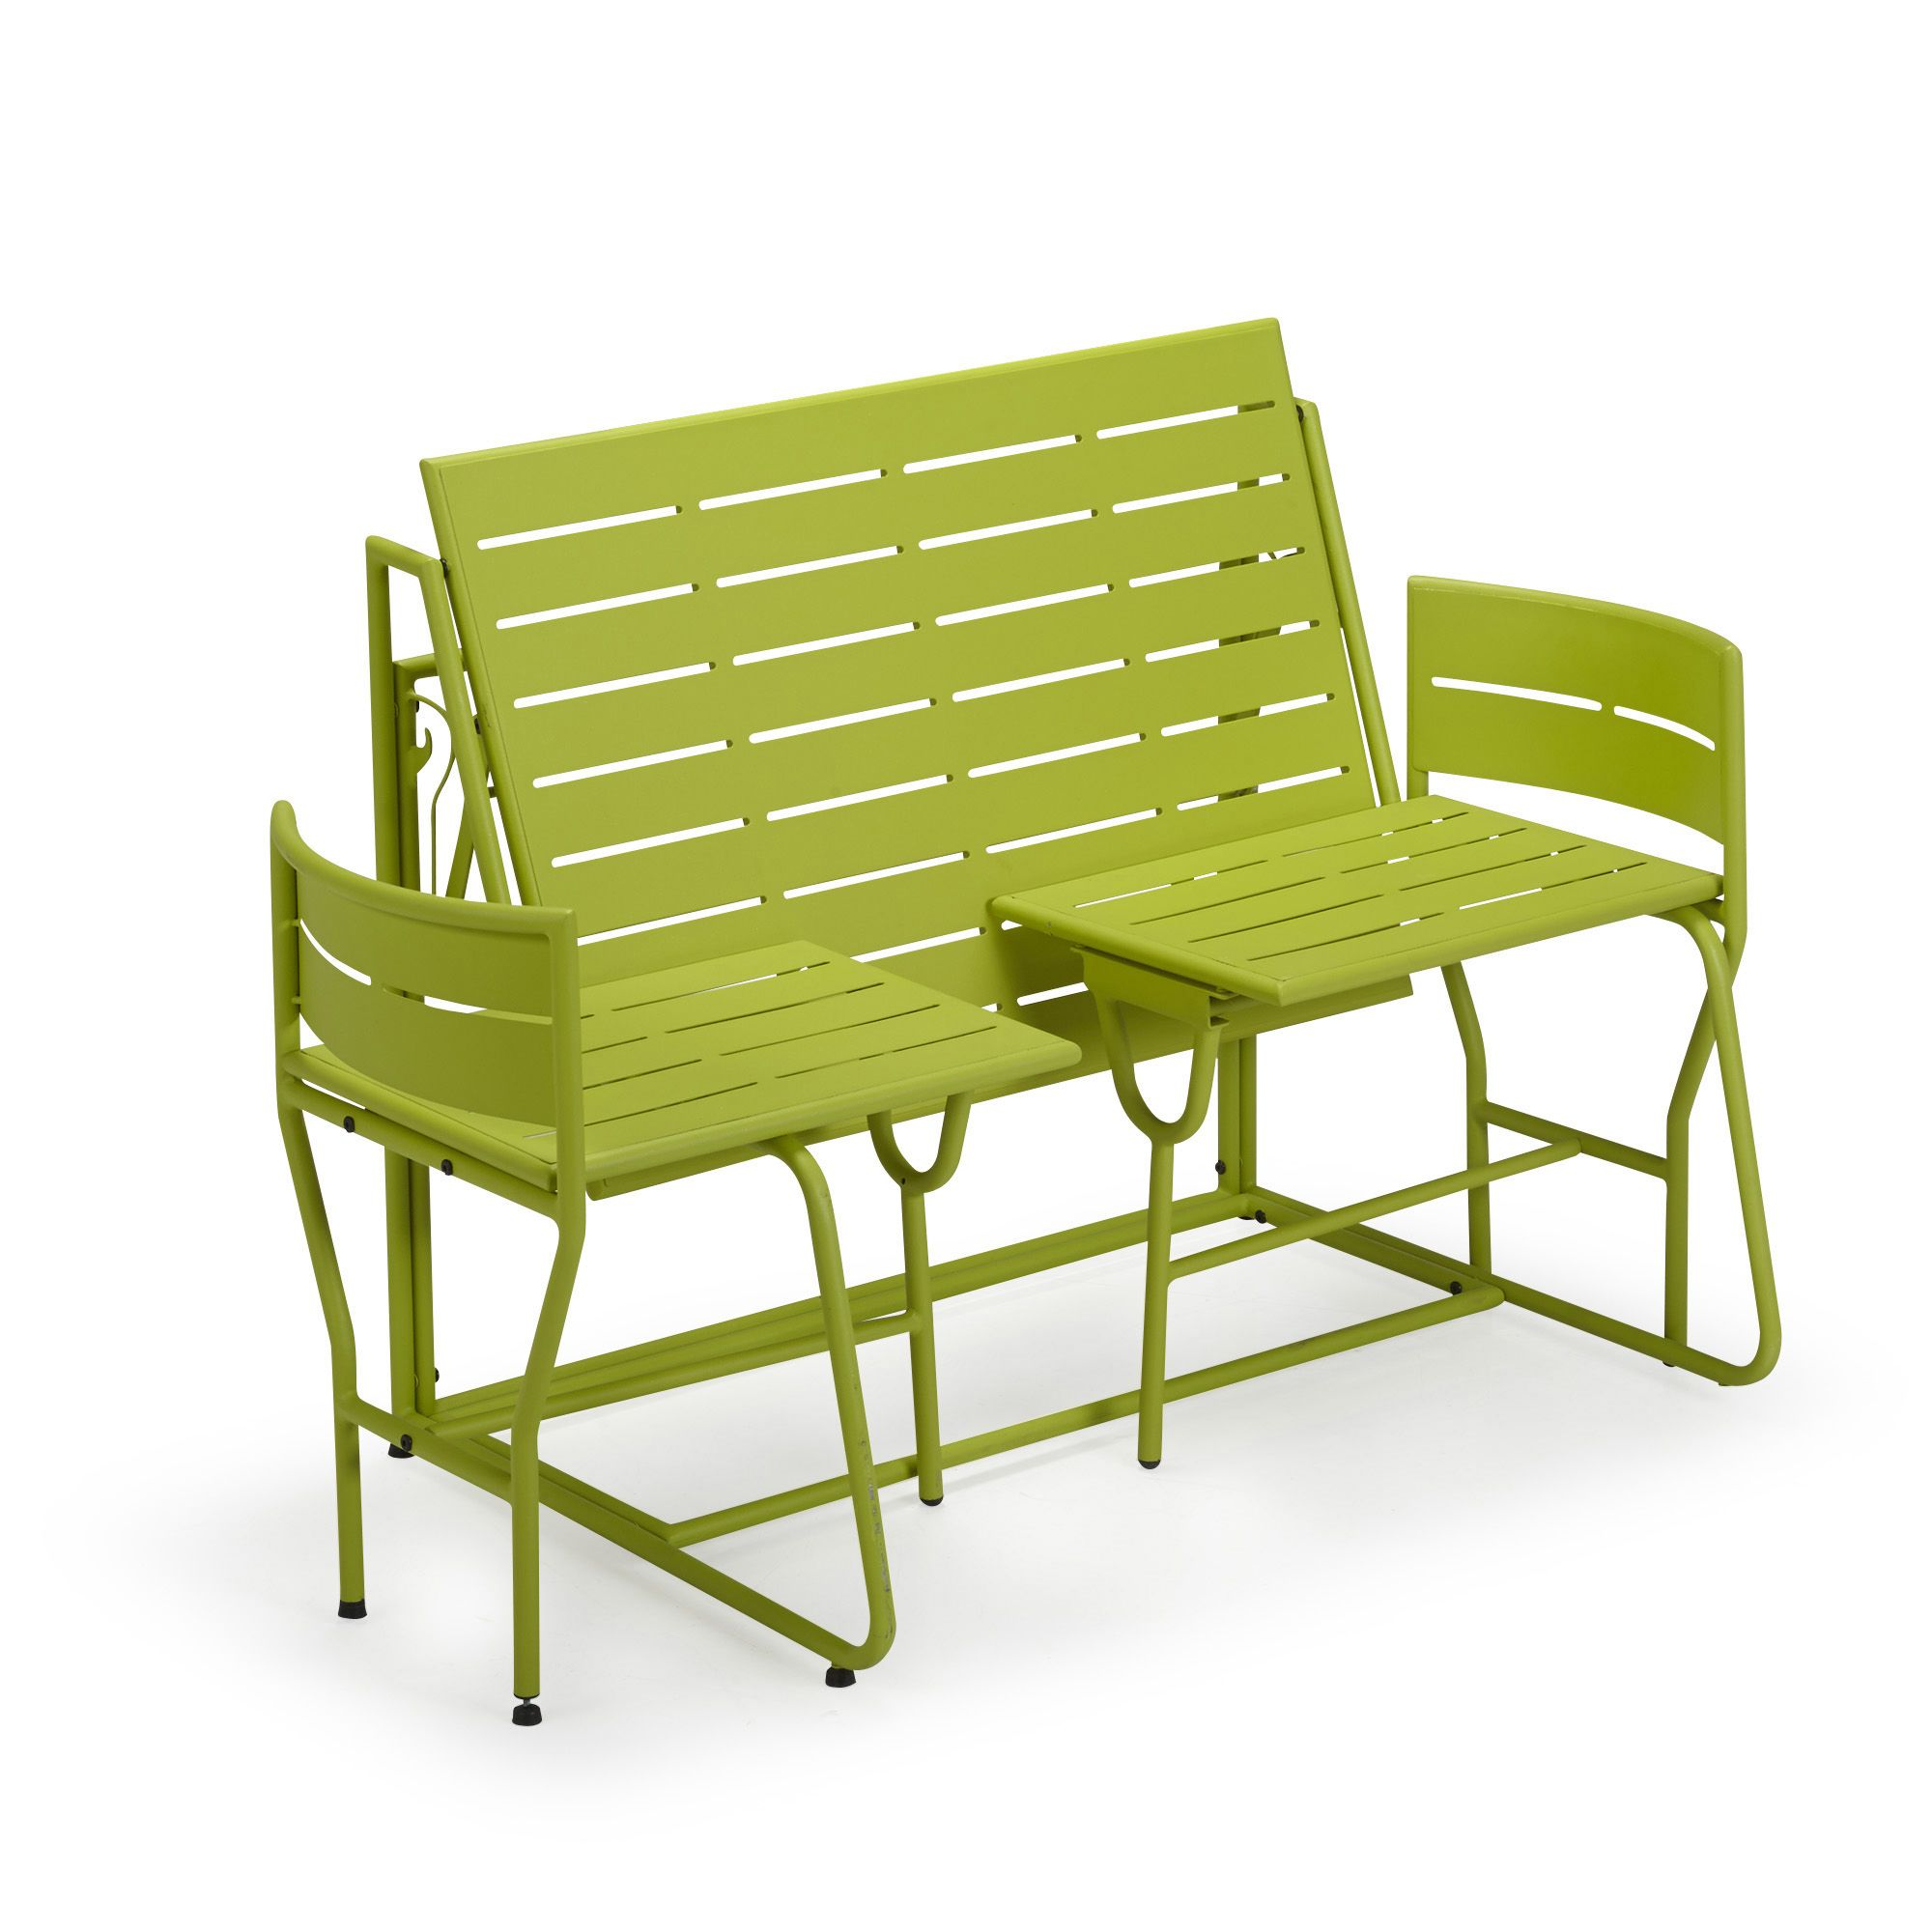 Salon-de-balcon-jardin-design-transformable-2-en-1-picnic-alinea-06